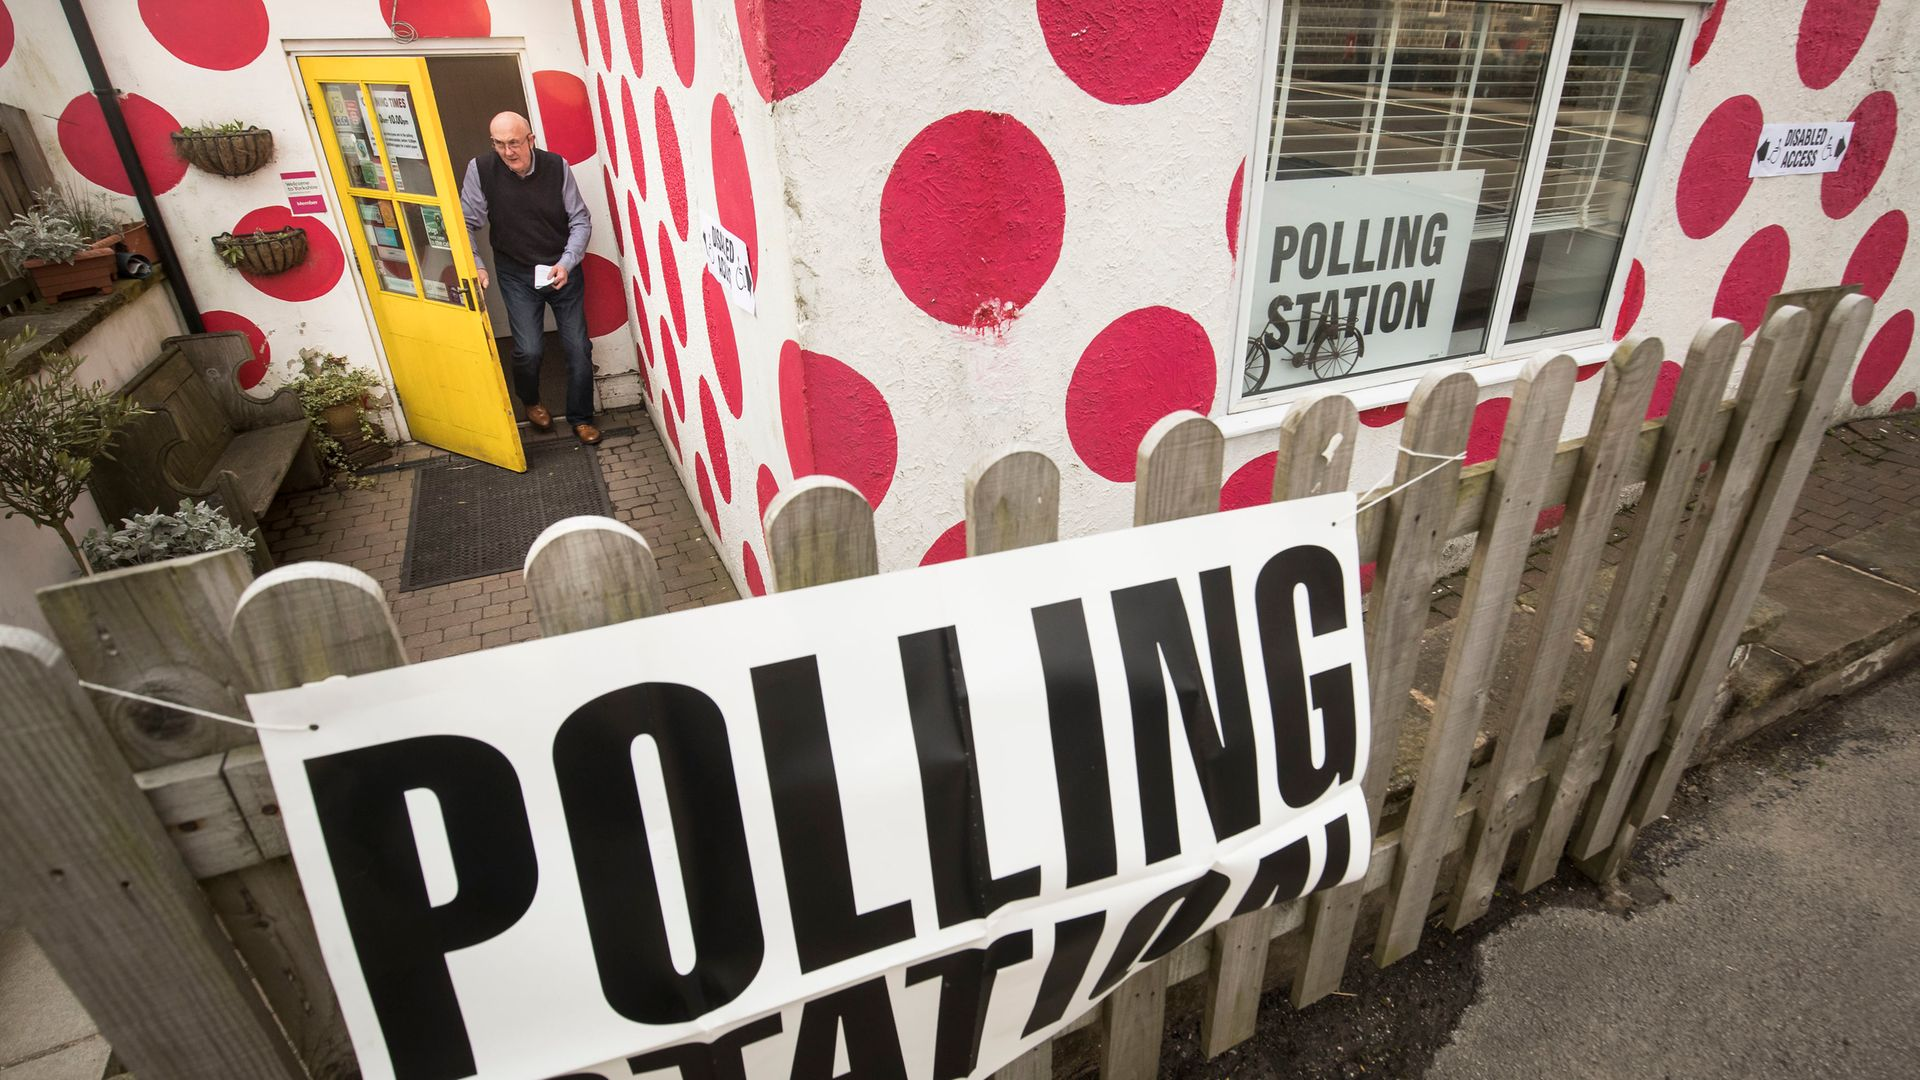 A polling station - Credit: PA